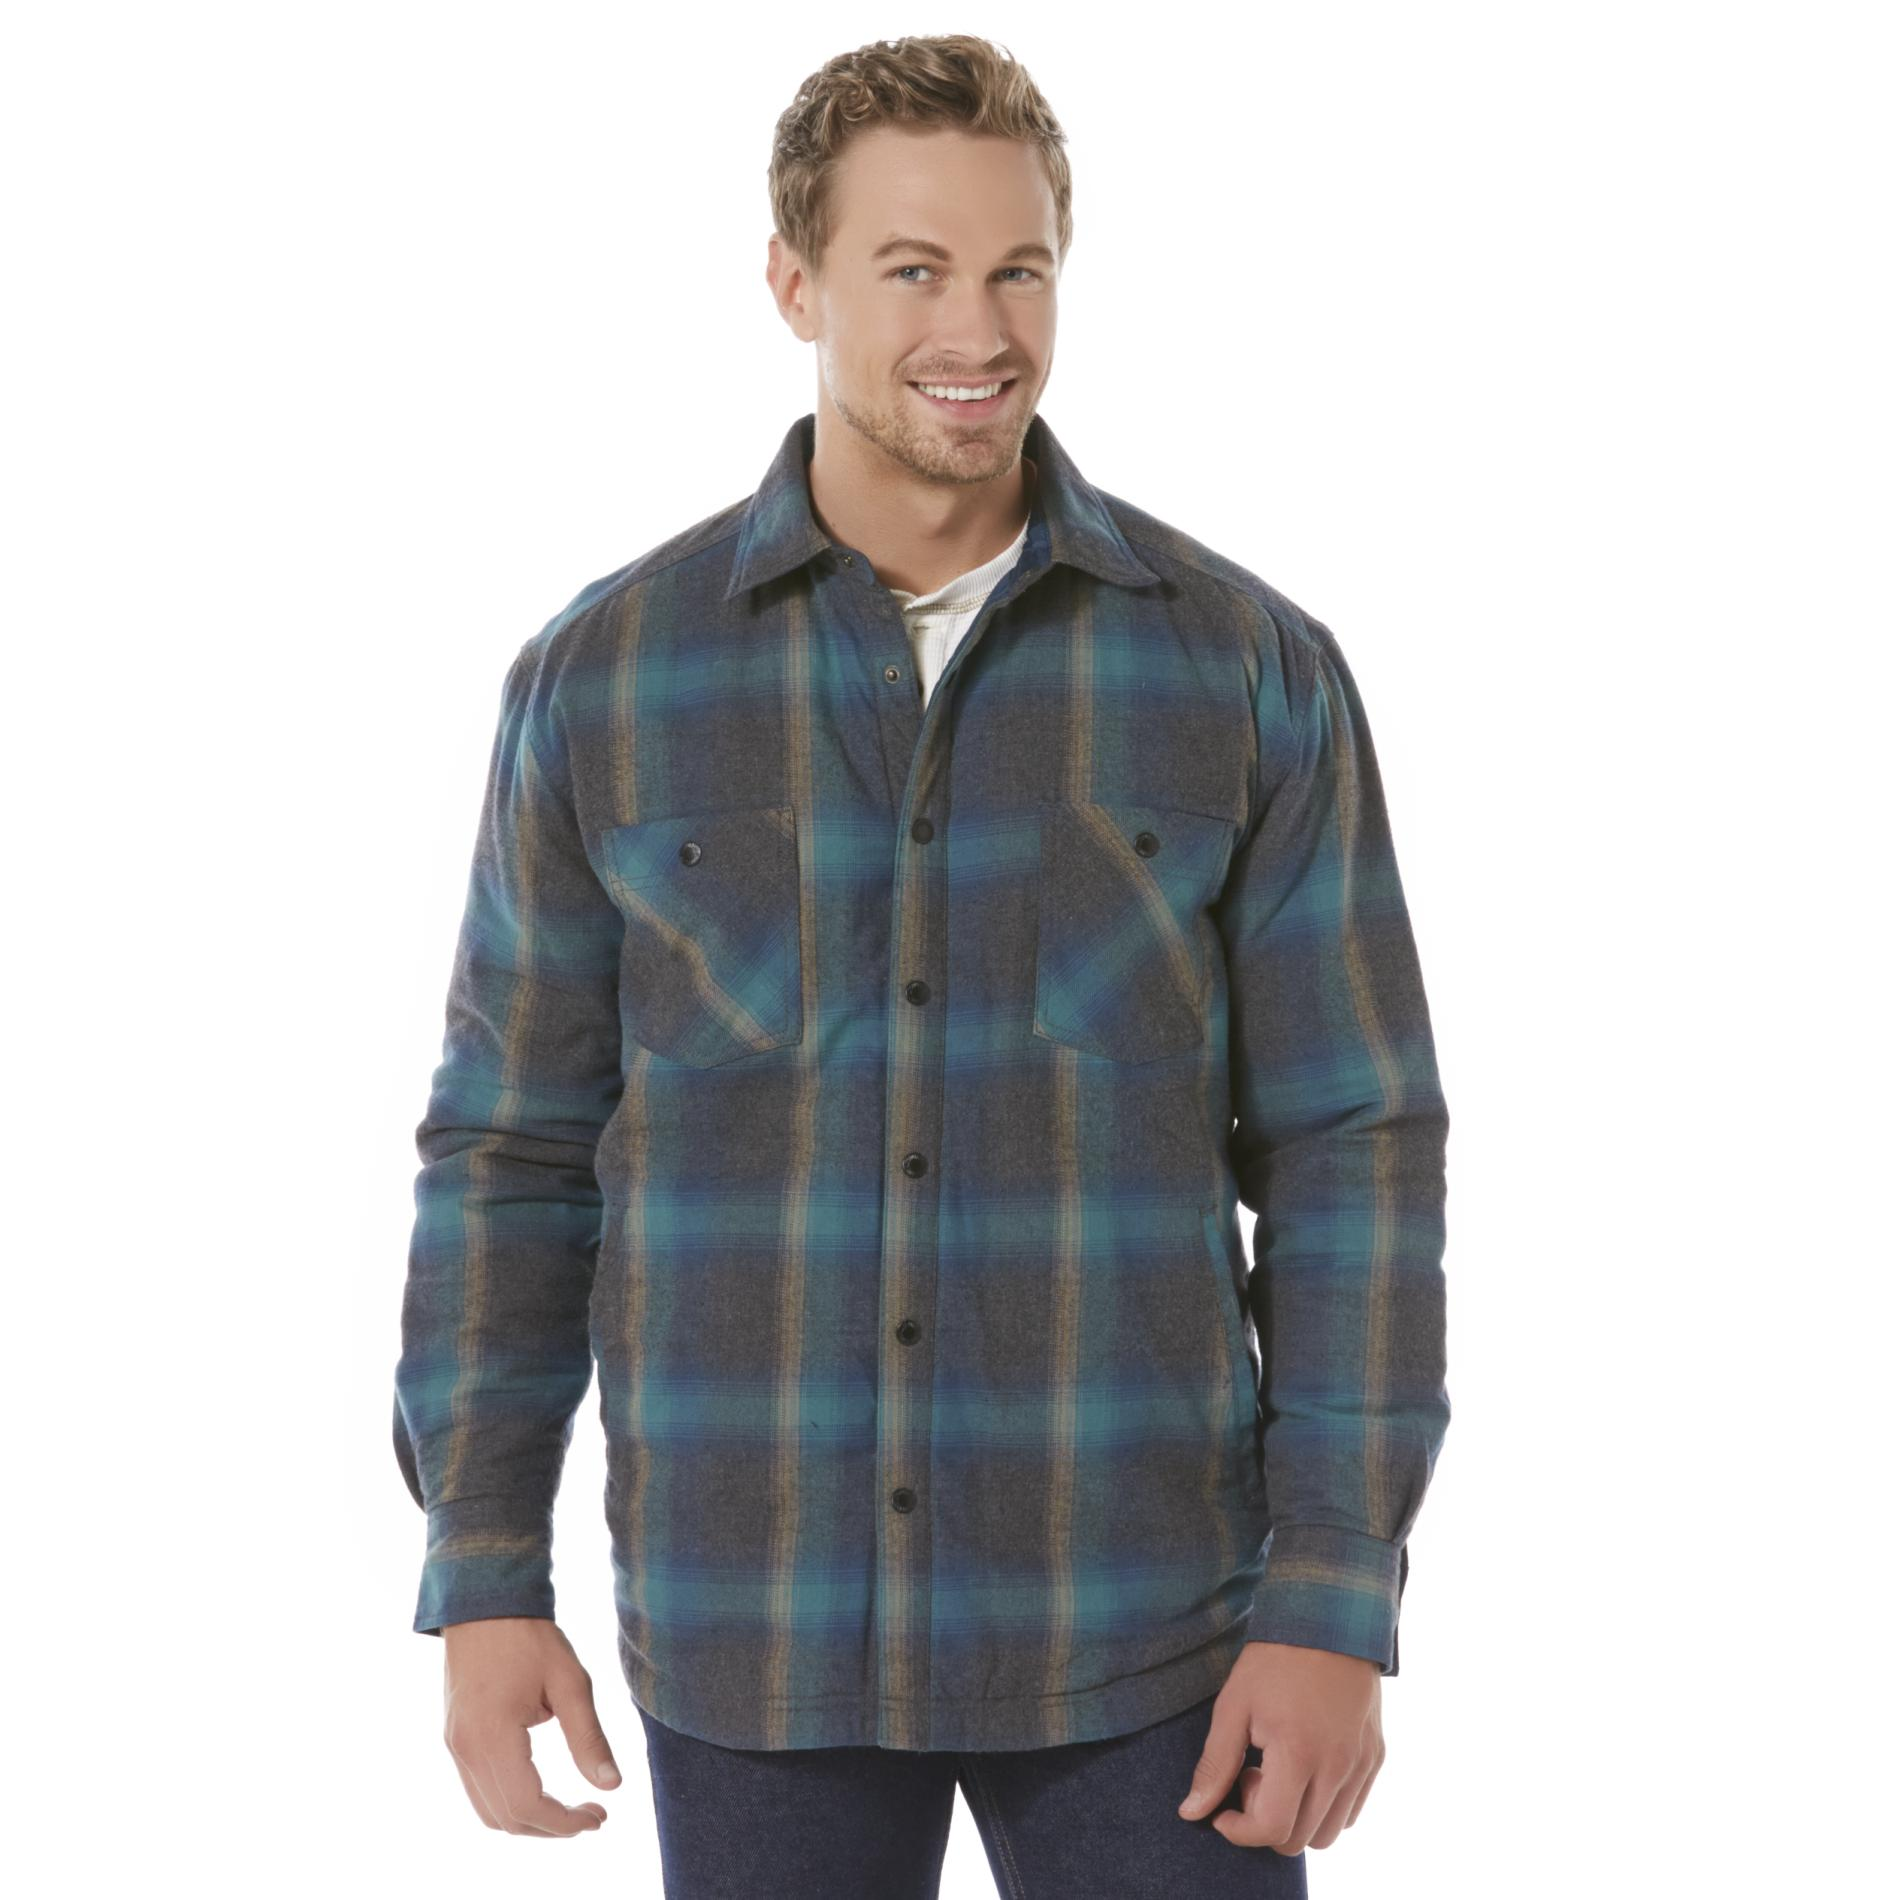 Outdoor Life Men's Reversible Flannel Shirt Jacket - Plaid